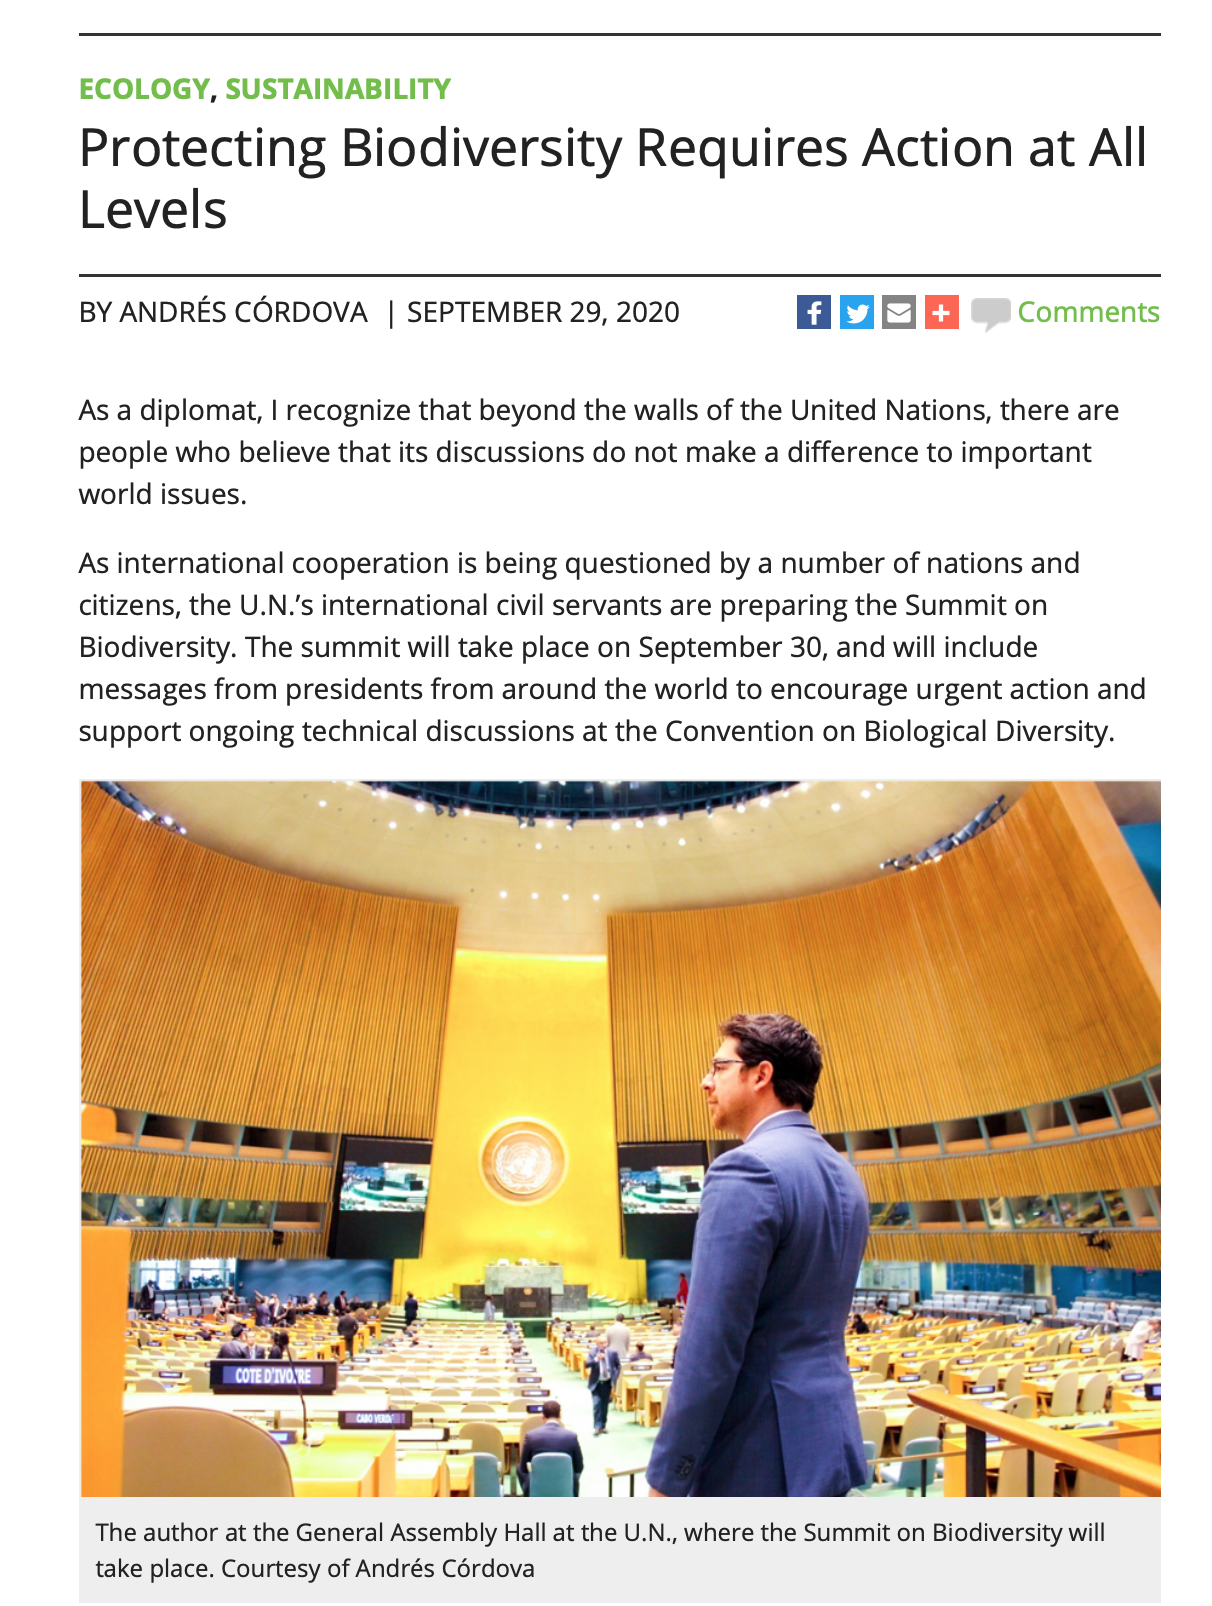 Protecting Biodiversity Requires Action at All Levels - Andres Cordova, 29 sep 2020